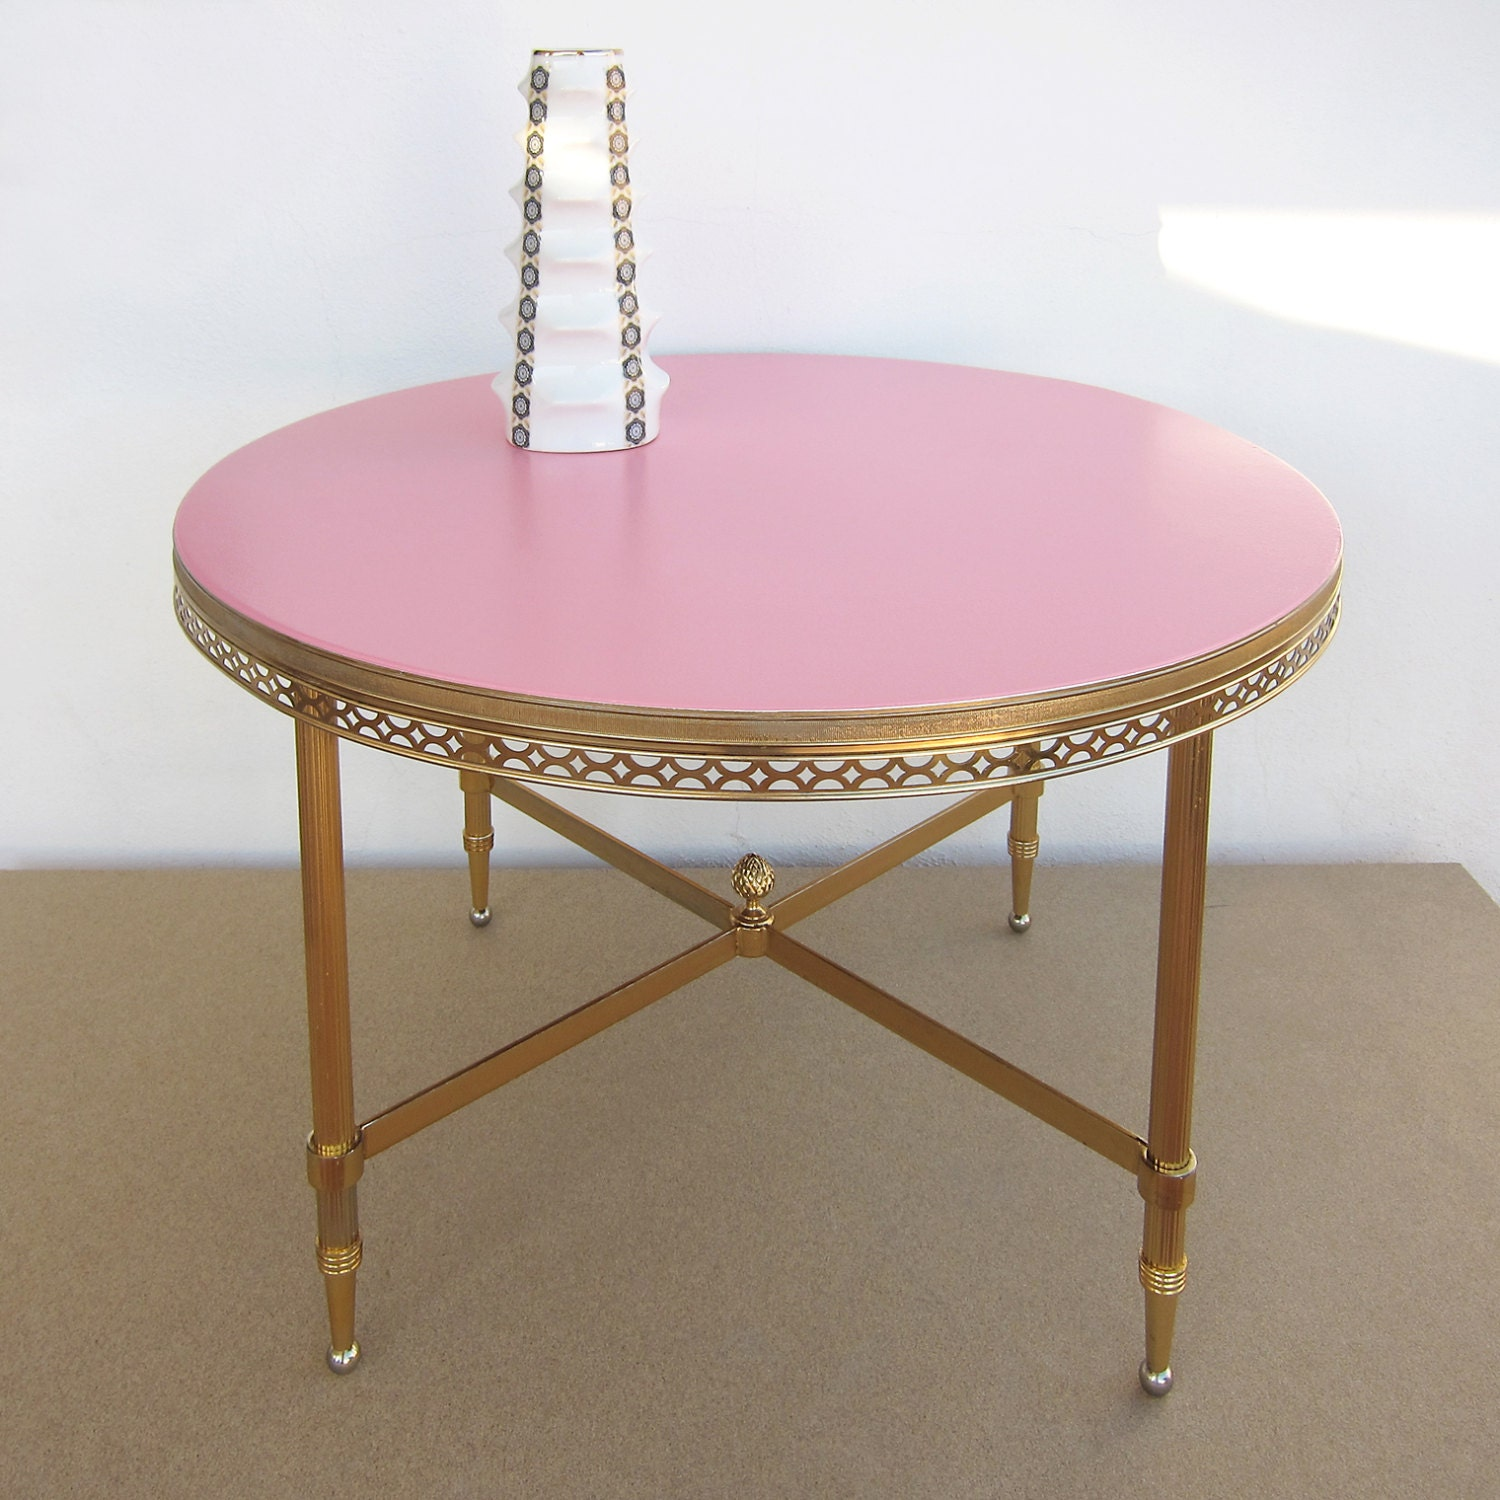 RESTORED BRASS Vintage Coffee Table Coral Pink Round 1960s